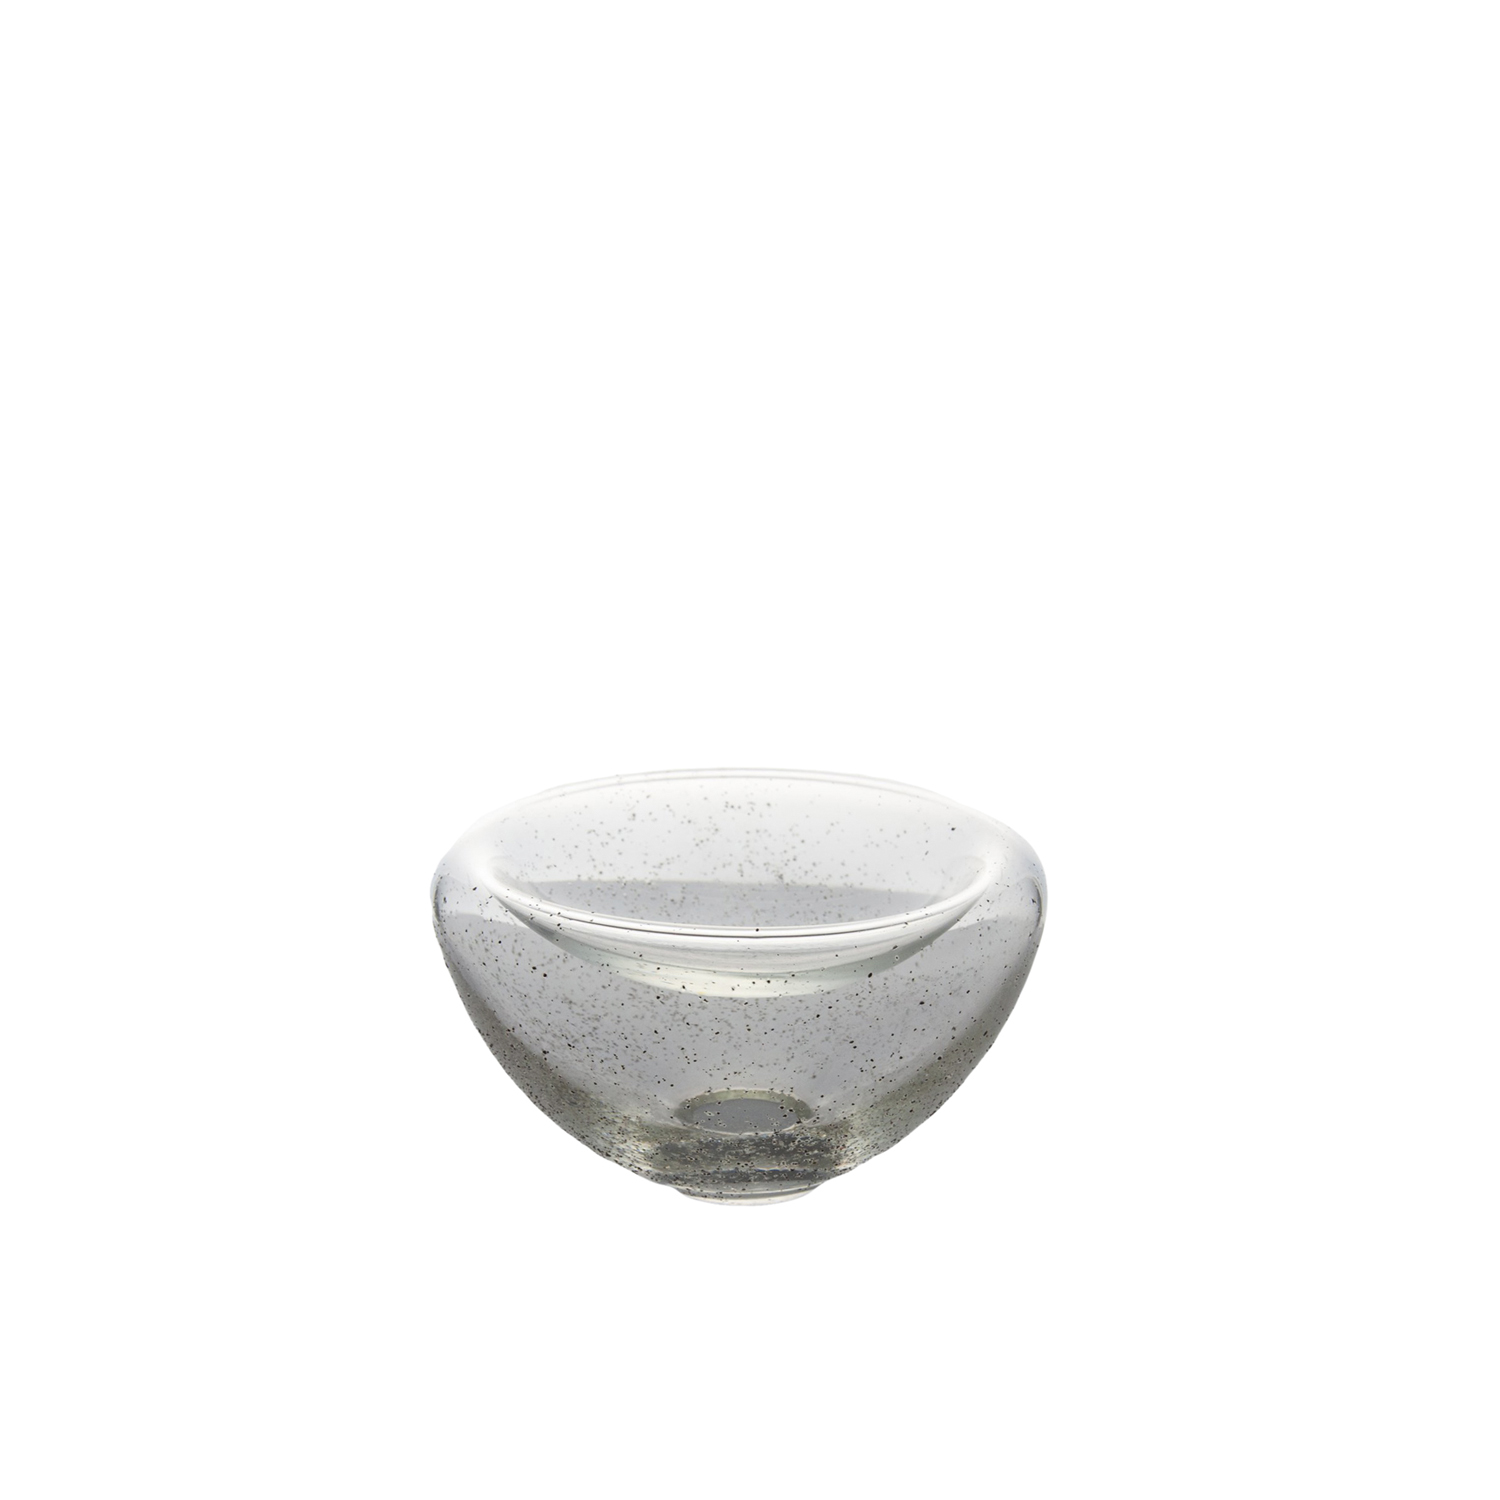 Sand to Glass Double Wall Bowl - The Double Wall Bowl is a hand-made bowl that combines glass with sand. This decorative bowl can be left empty and serve as a beautiful and eye catching focal point or be used to hold dry decorative additions to your home such as pressed flowers. This piece is part of a collection from 2018 which is focused on the idea of two. Such as the two types of sand that is used or creating double walls and connecting the two parts. 